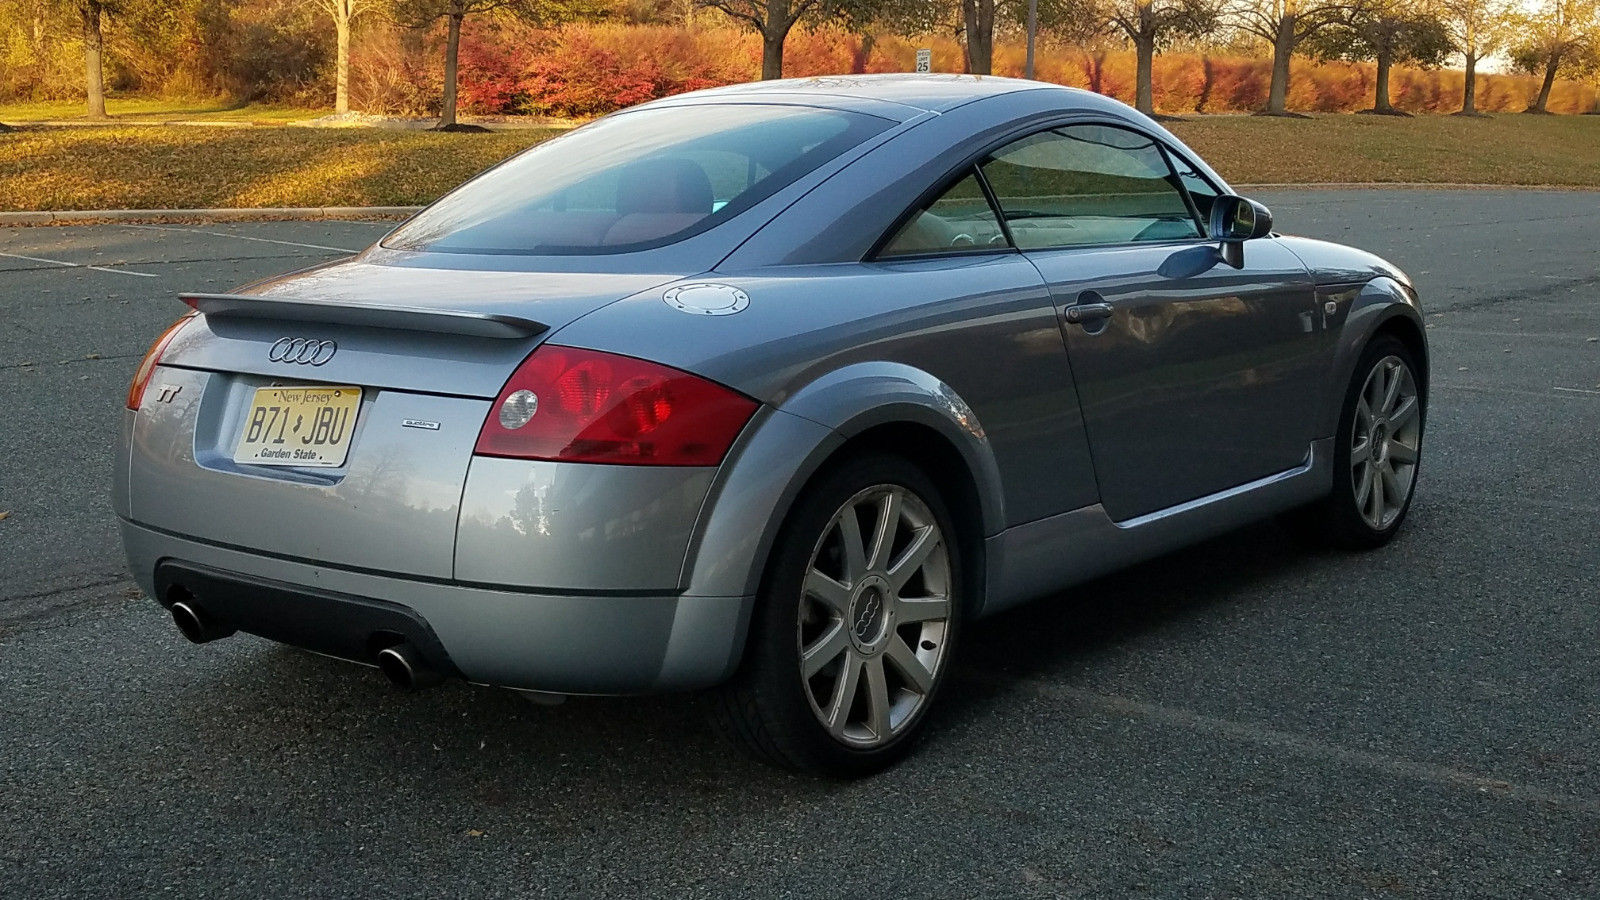 2002 audi tt coupe 225 quattro alms edition german cars for sale blog. Black Bedroom Furniture Sets. Home Design Ideas